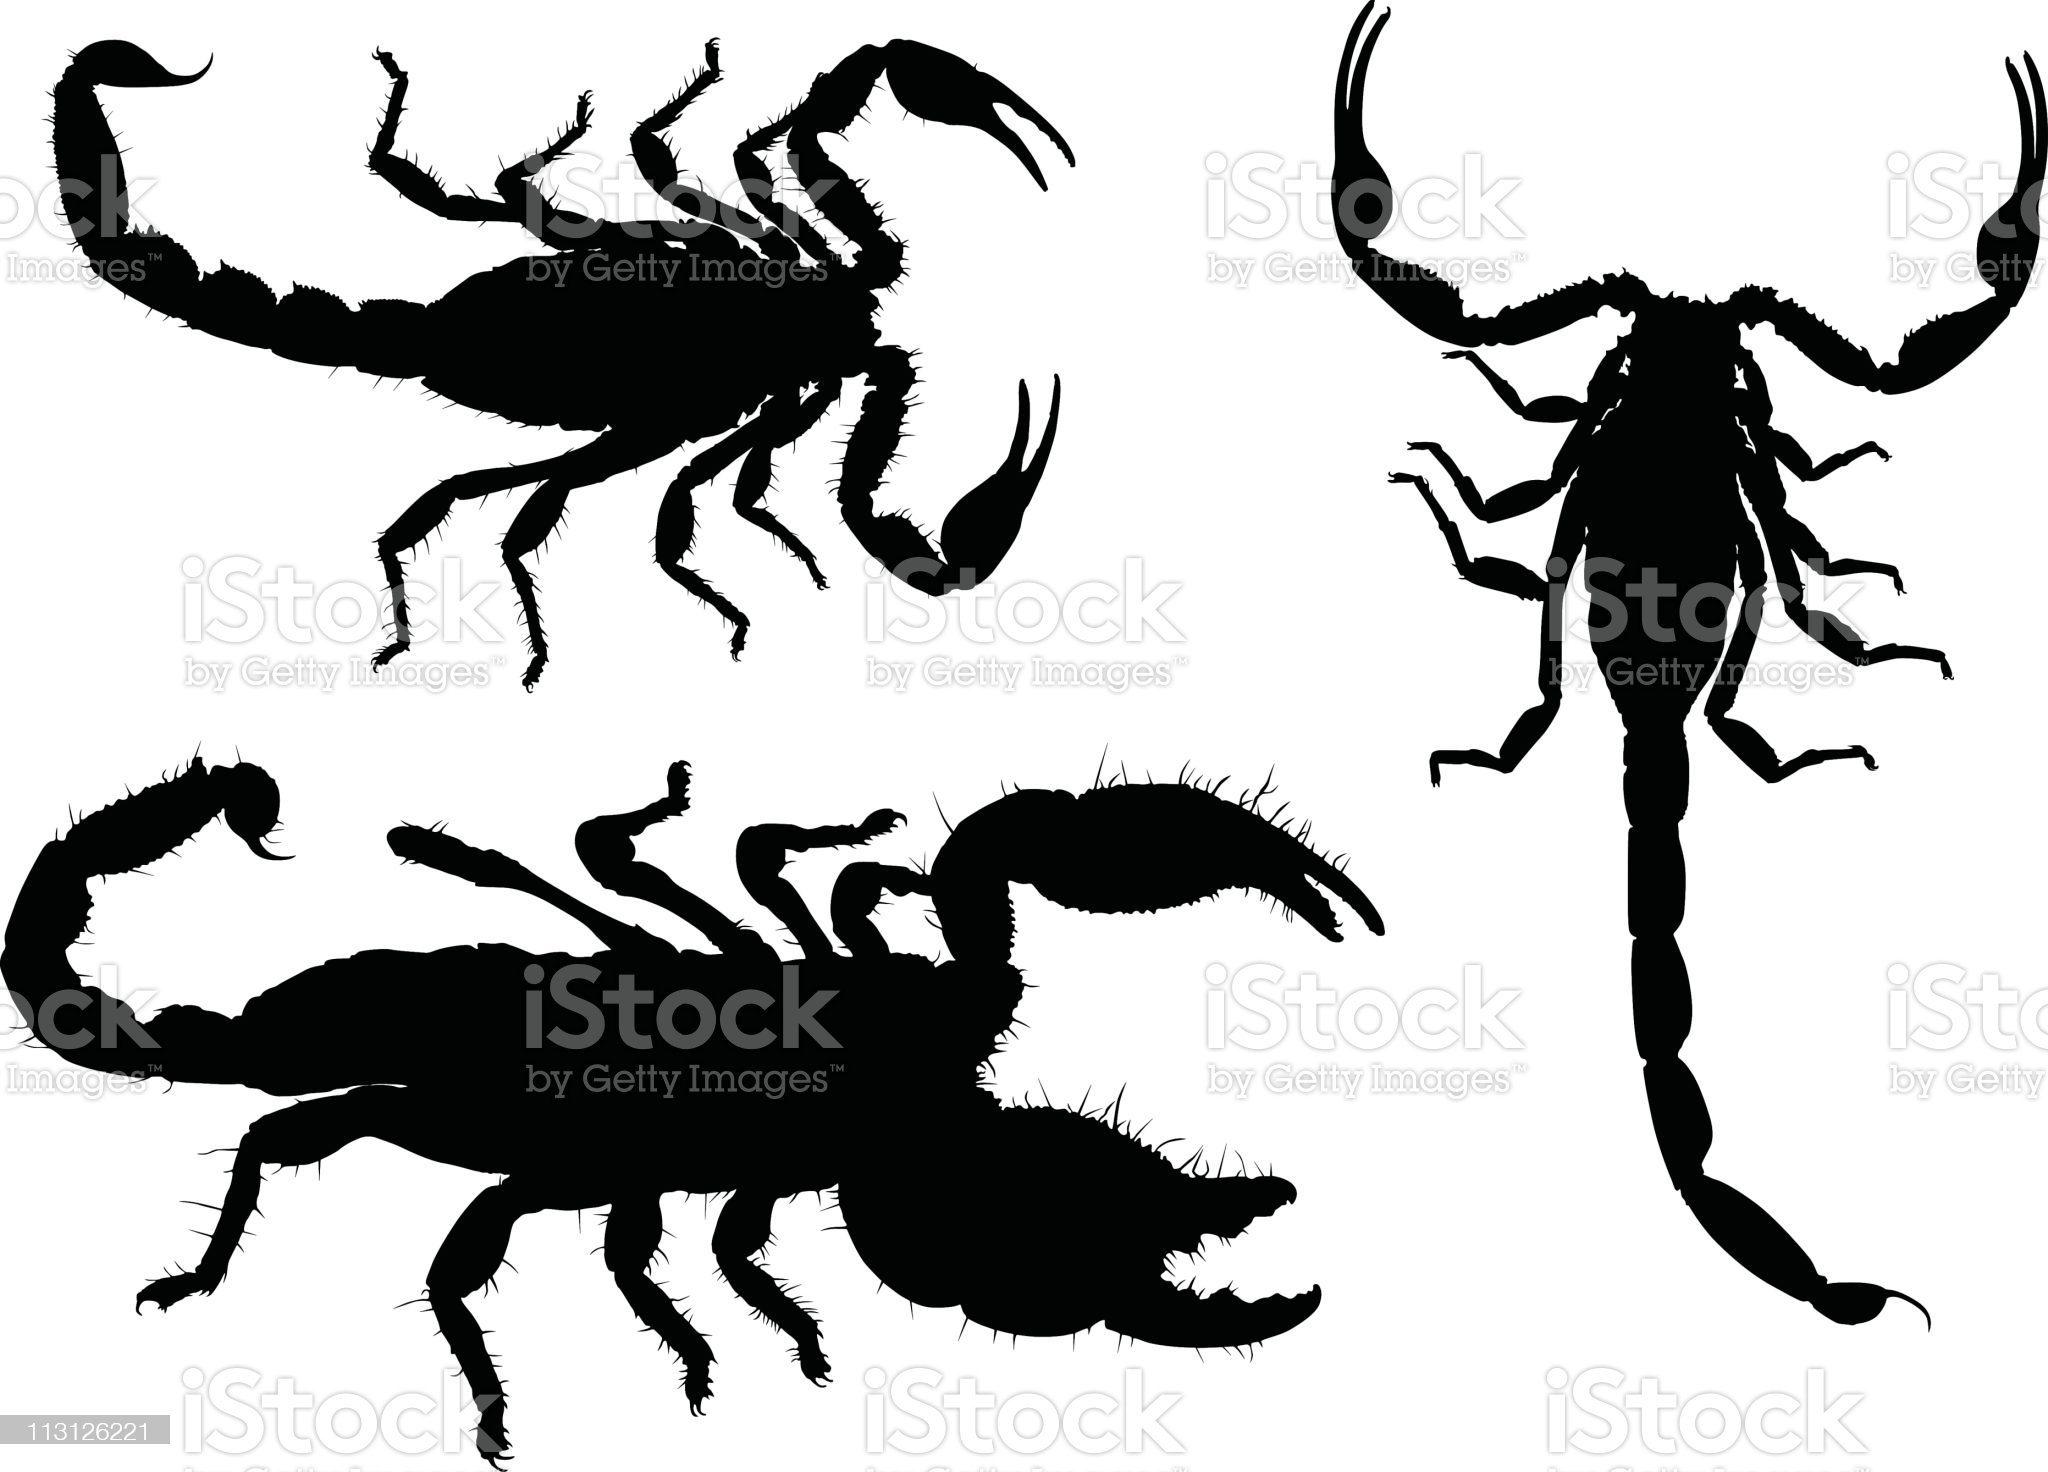 Detailed Scorpion Silhouettes royalty-free stock vector art